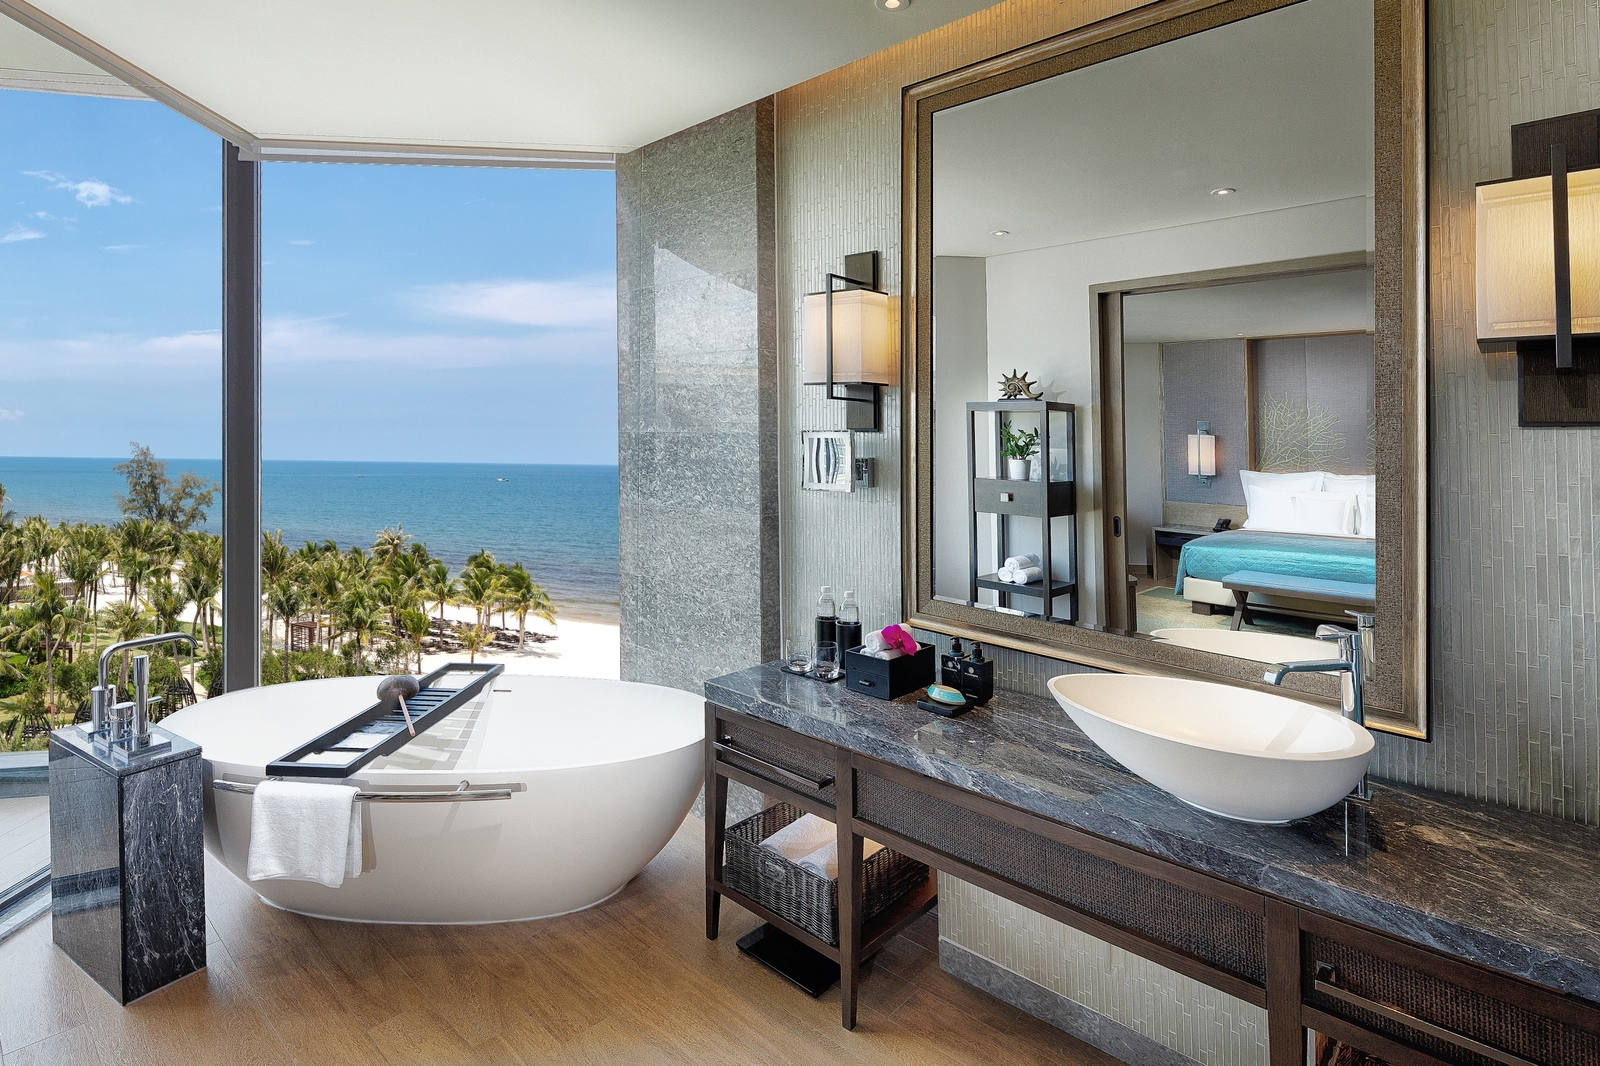 Ocean-View-Room-Bathroom-1833-1543834204